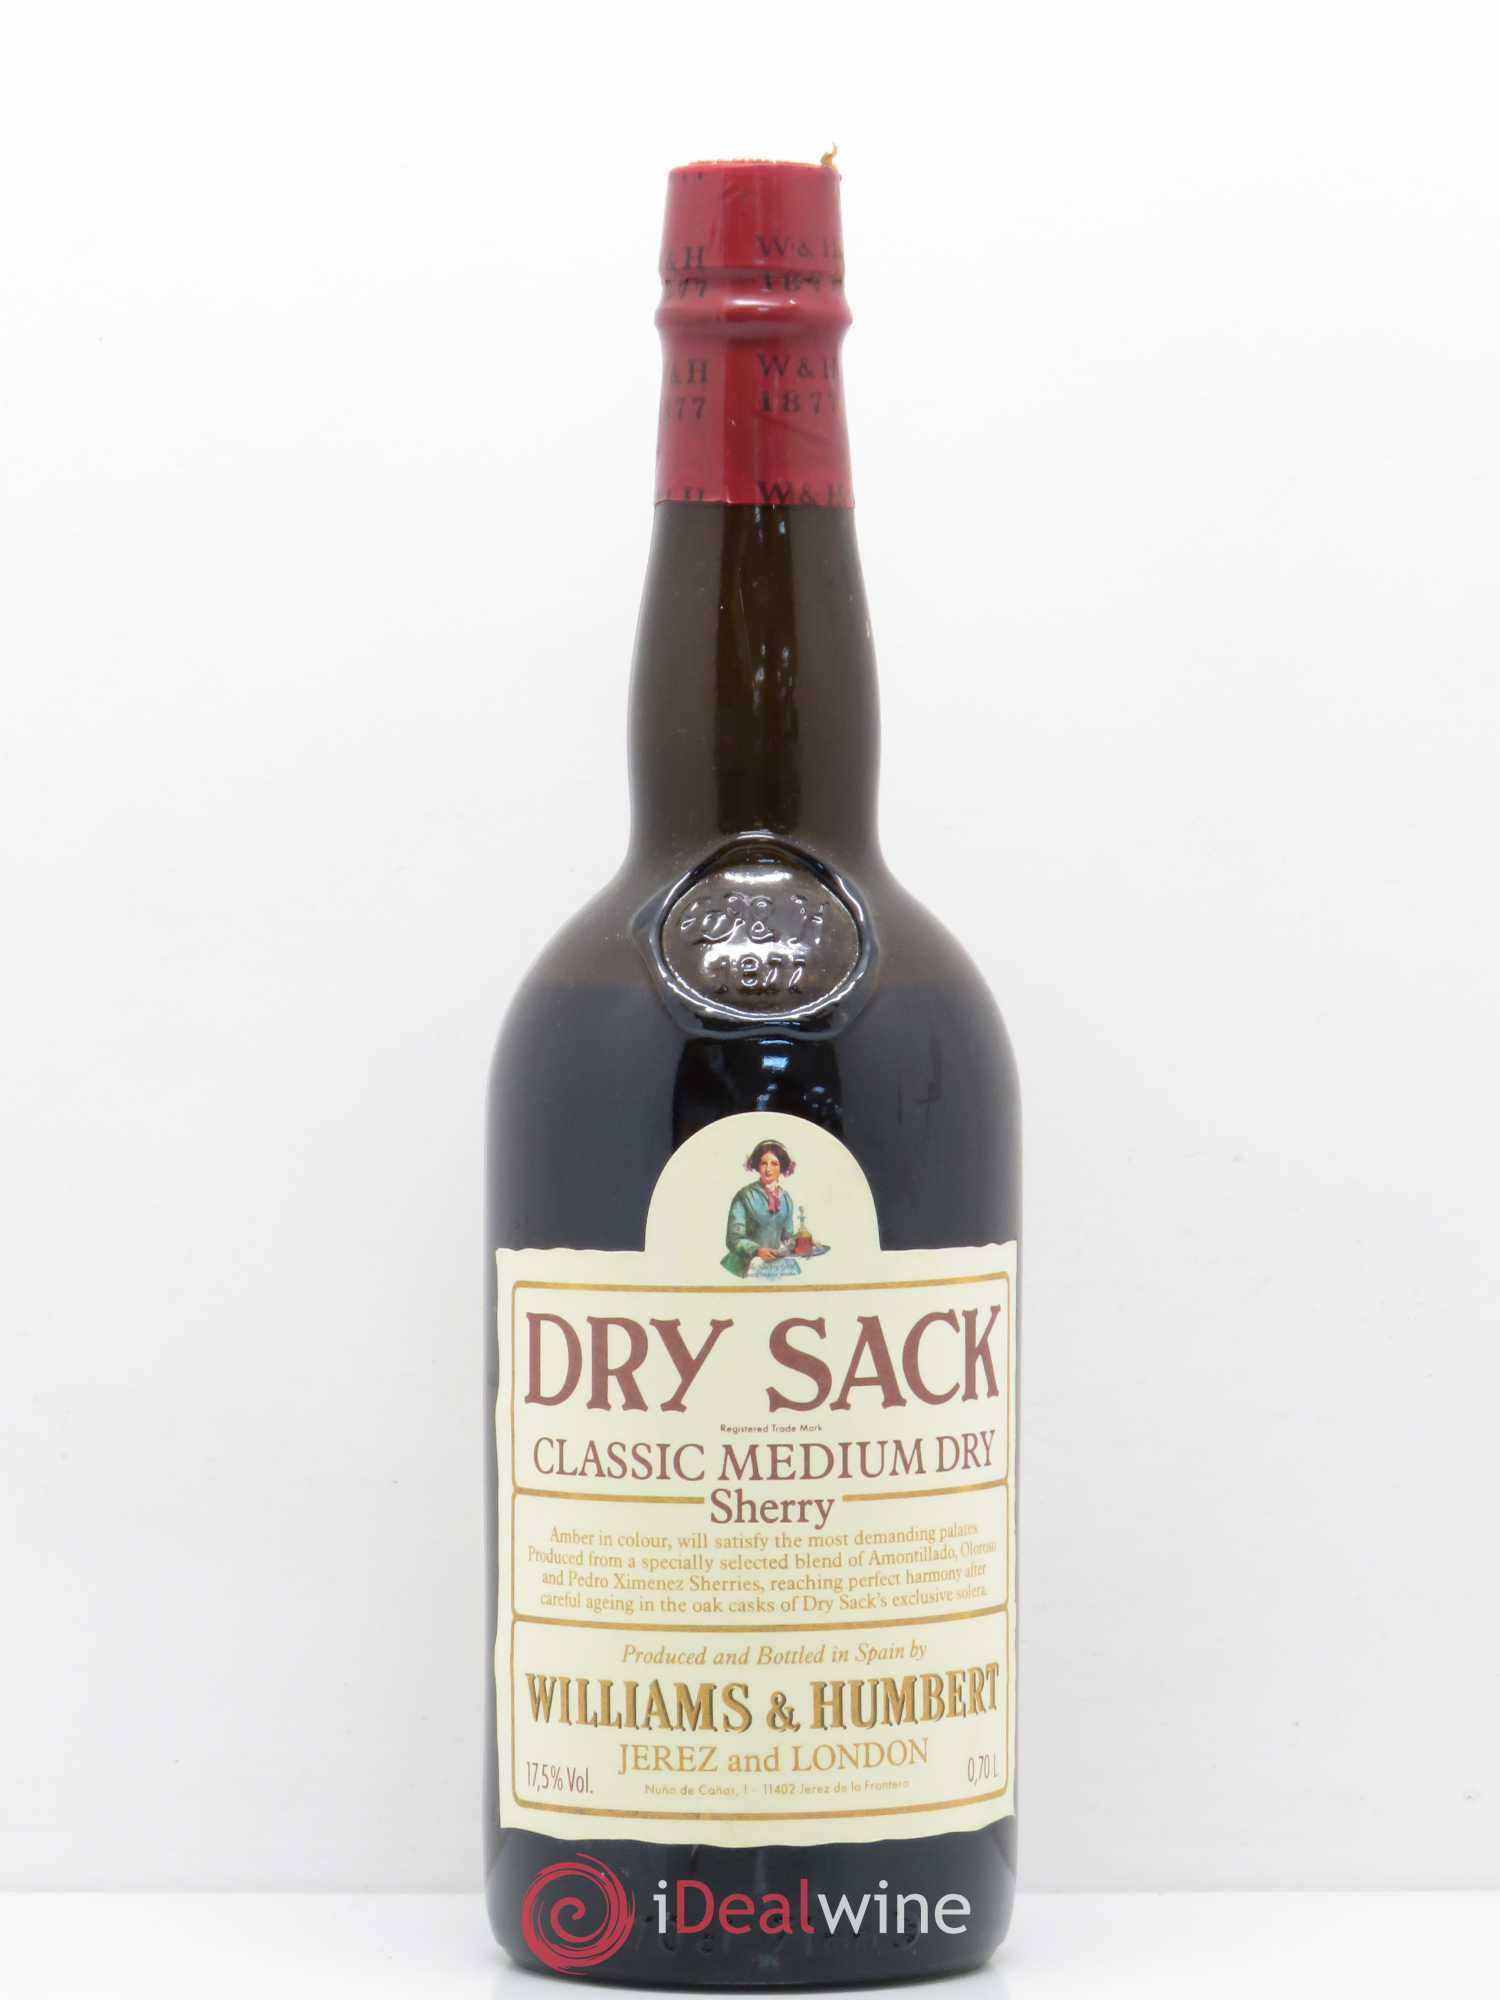 Buy Jerez Xerez Sherry Classic Medium Dry Dry Sack Williams And Humbert No Reserve Lot 153